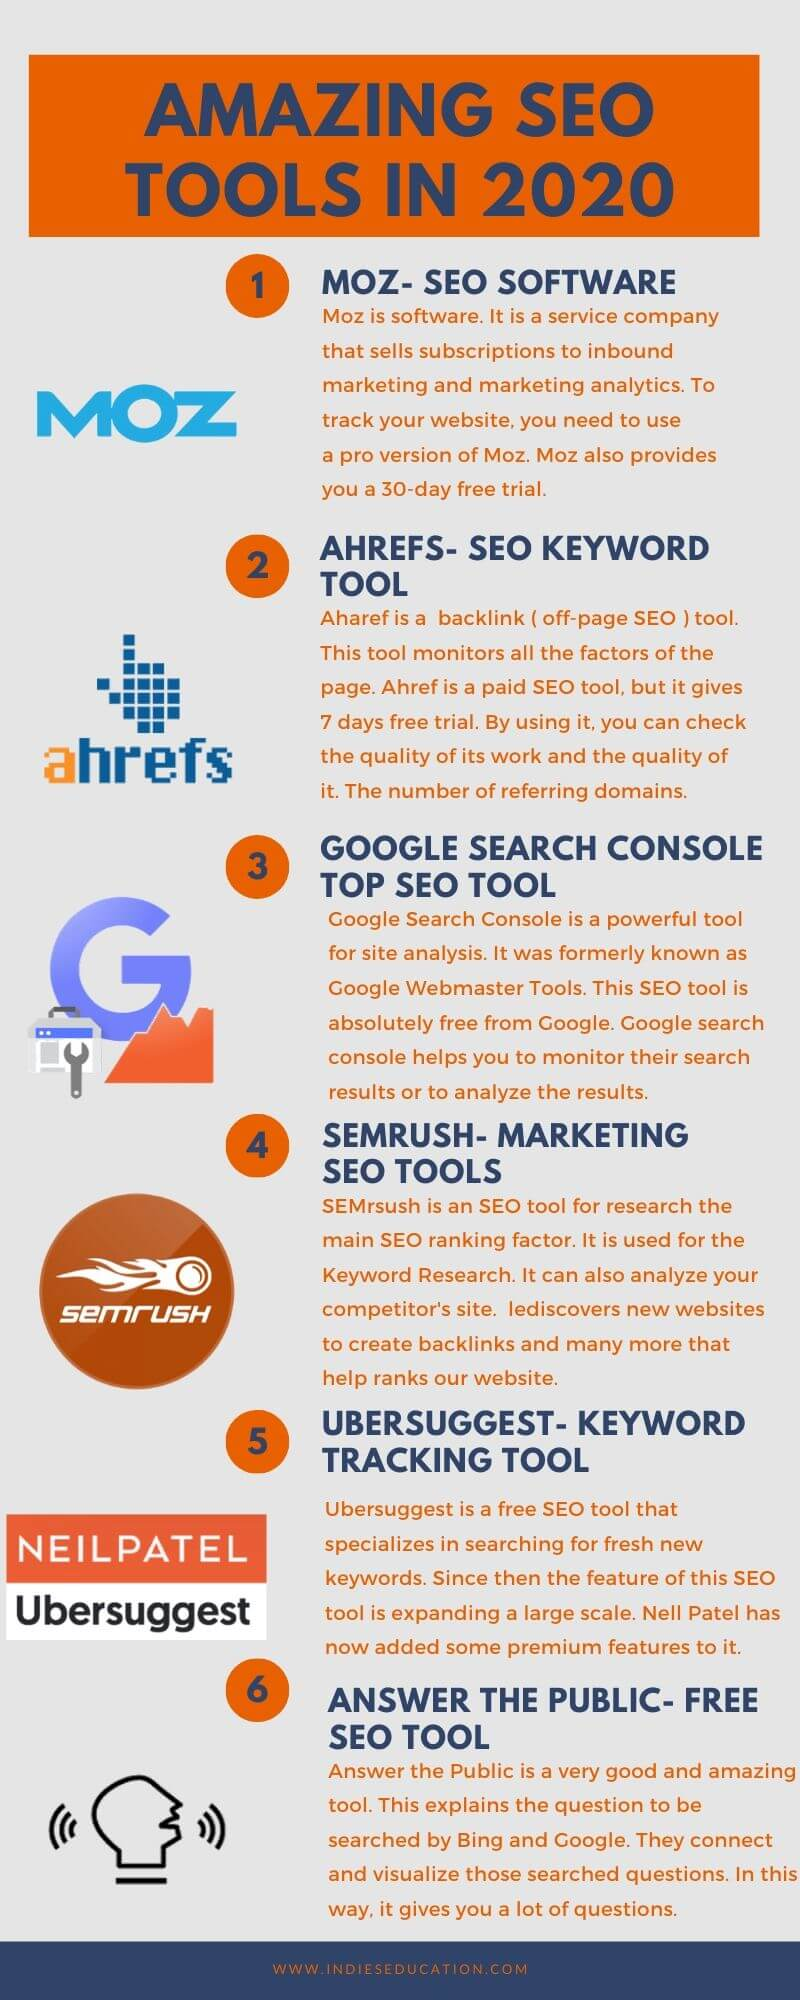 10 Amazing SEO Tools You Should Be Use in 2020